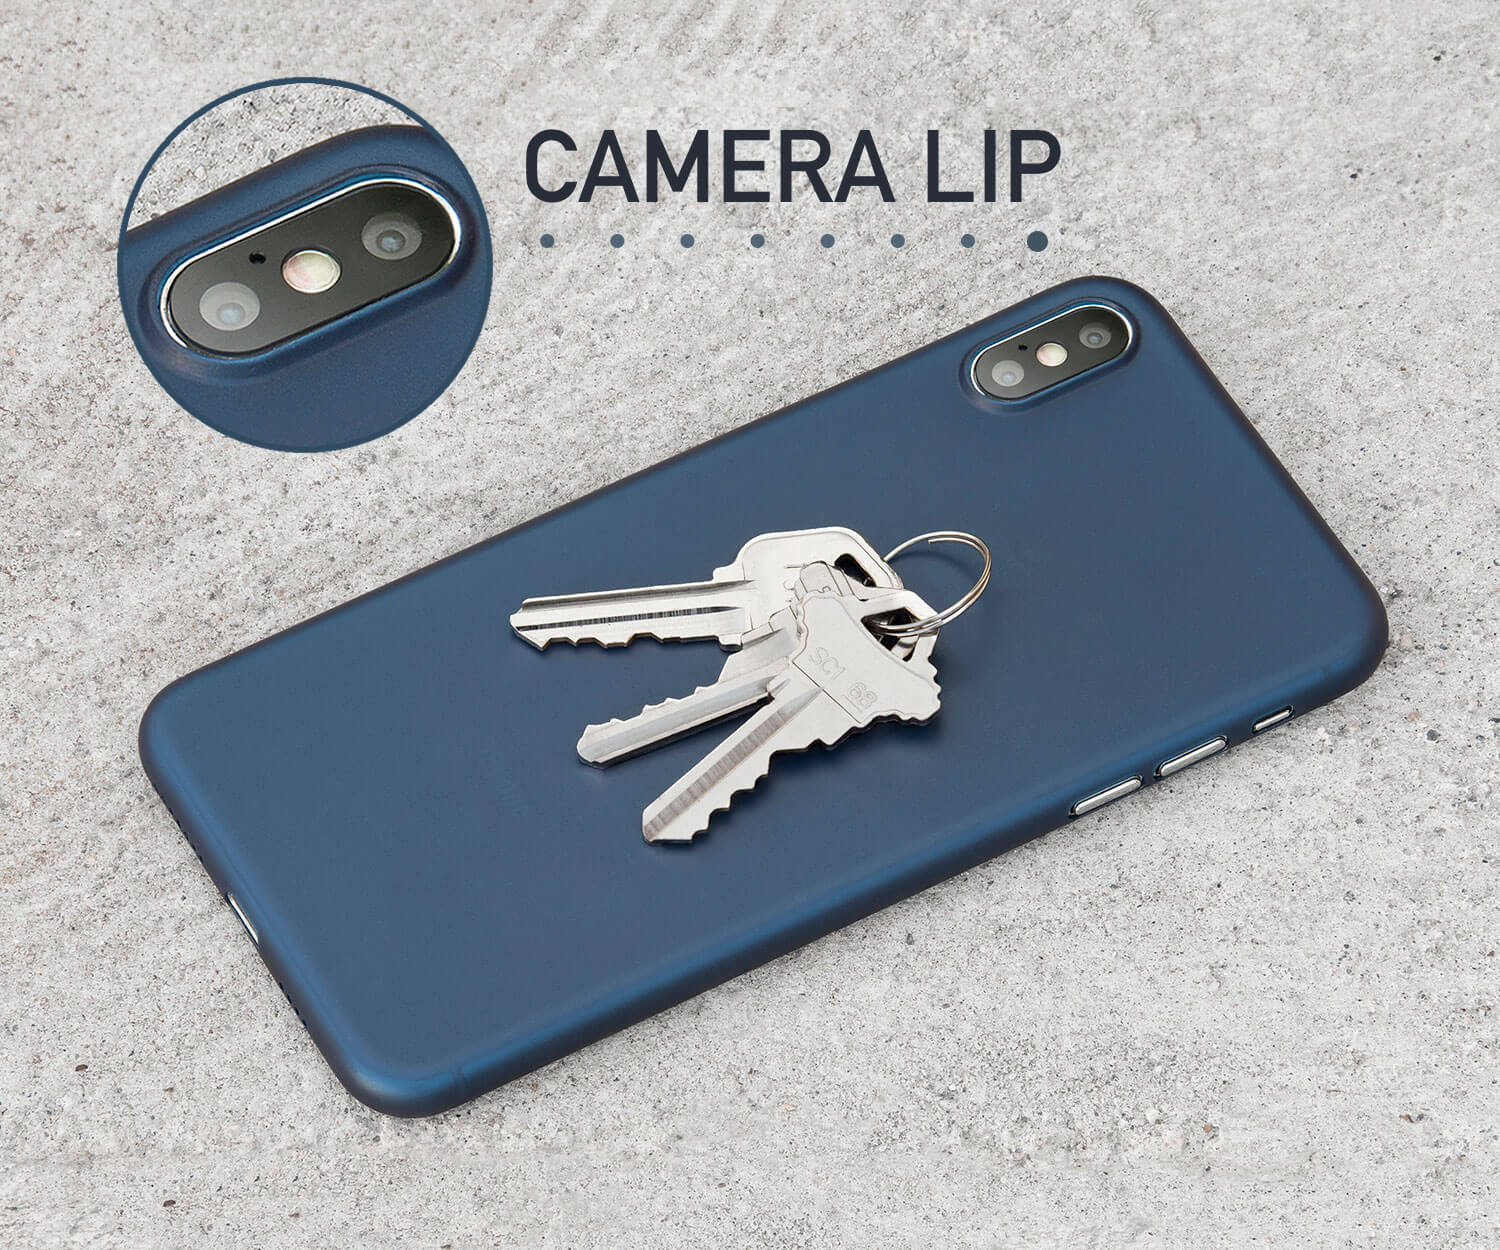 A thin iPhone XS Max case with a lip for camera protection